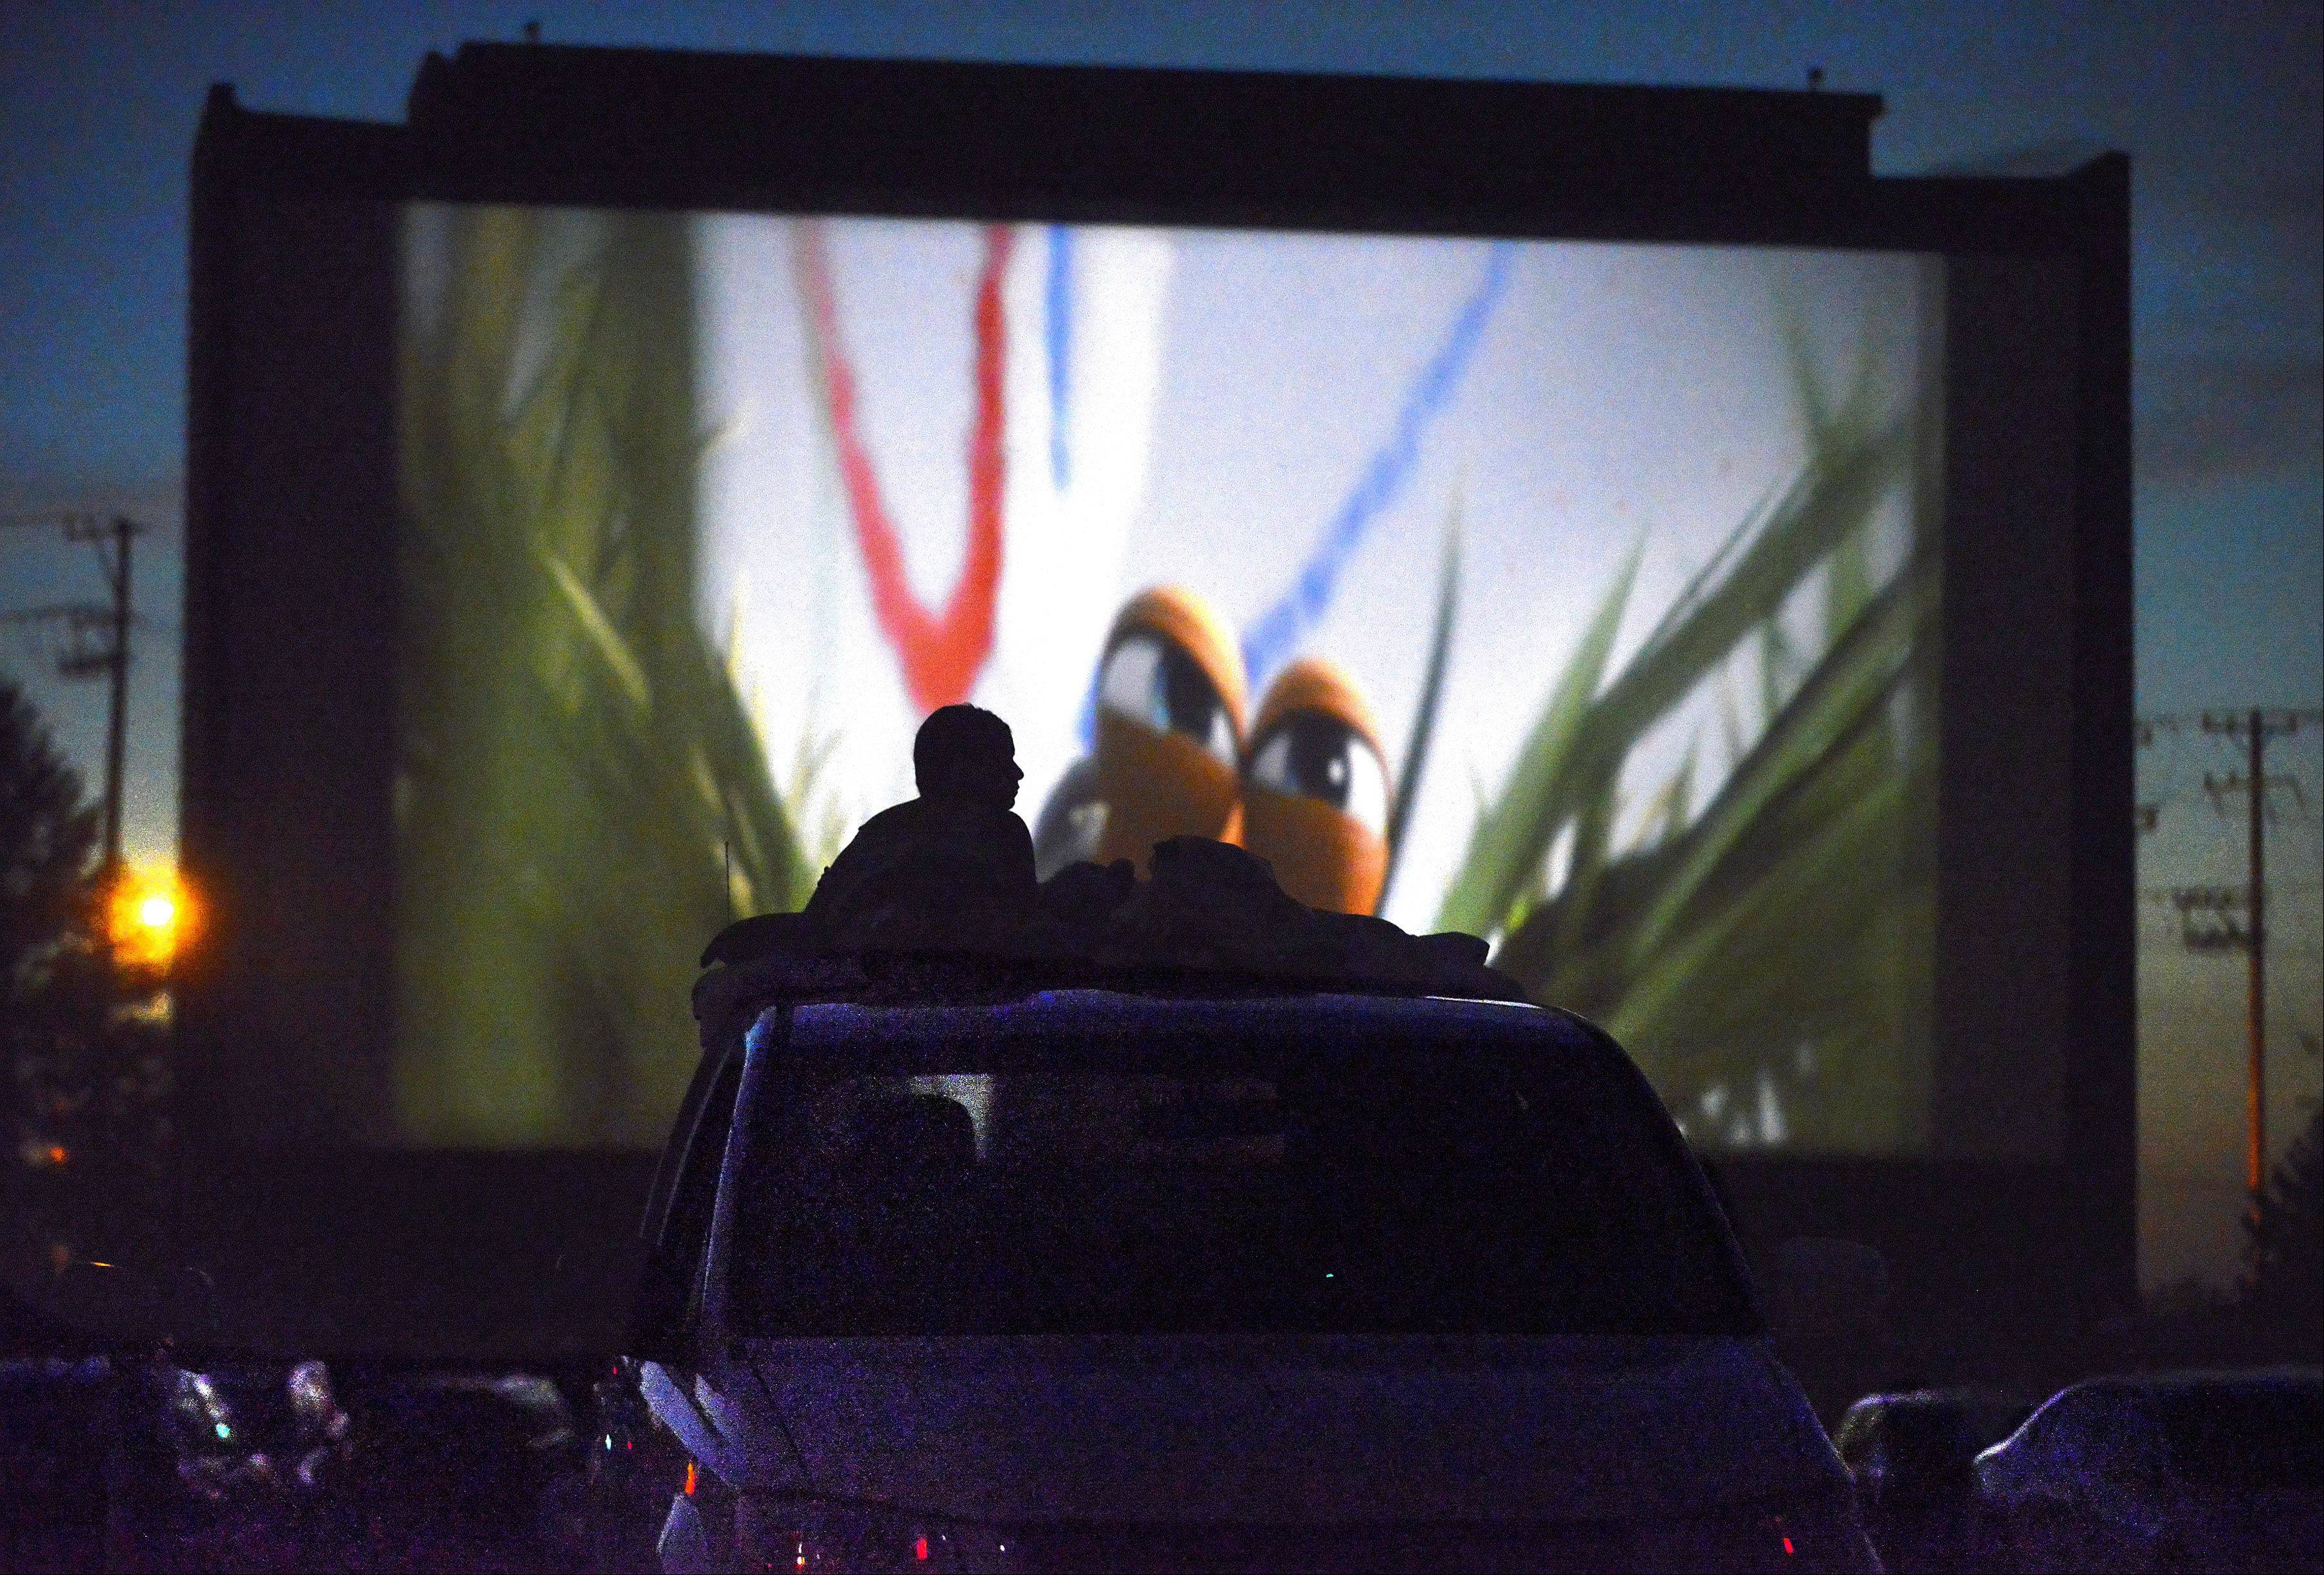 The McHenry Outdoor Theater is trying to raise funds to cover the estimated $130,000 cost of a digital projection system in hopes of keeping the theater open.